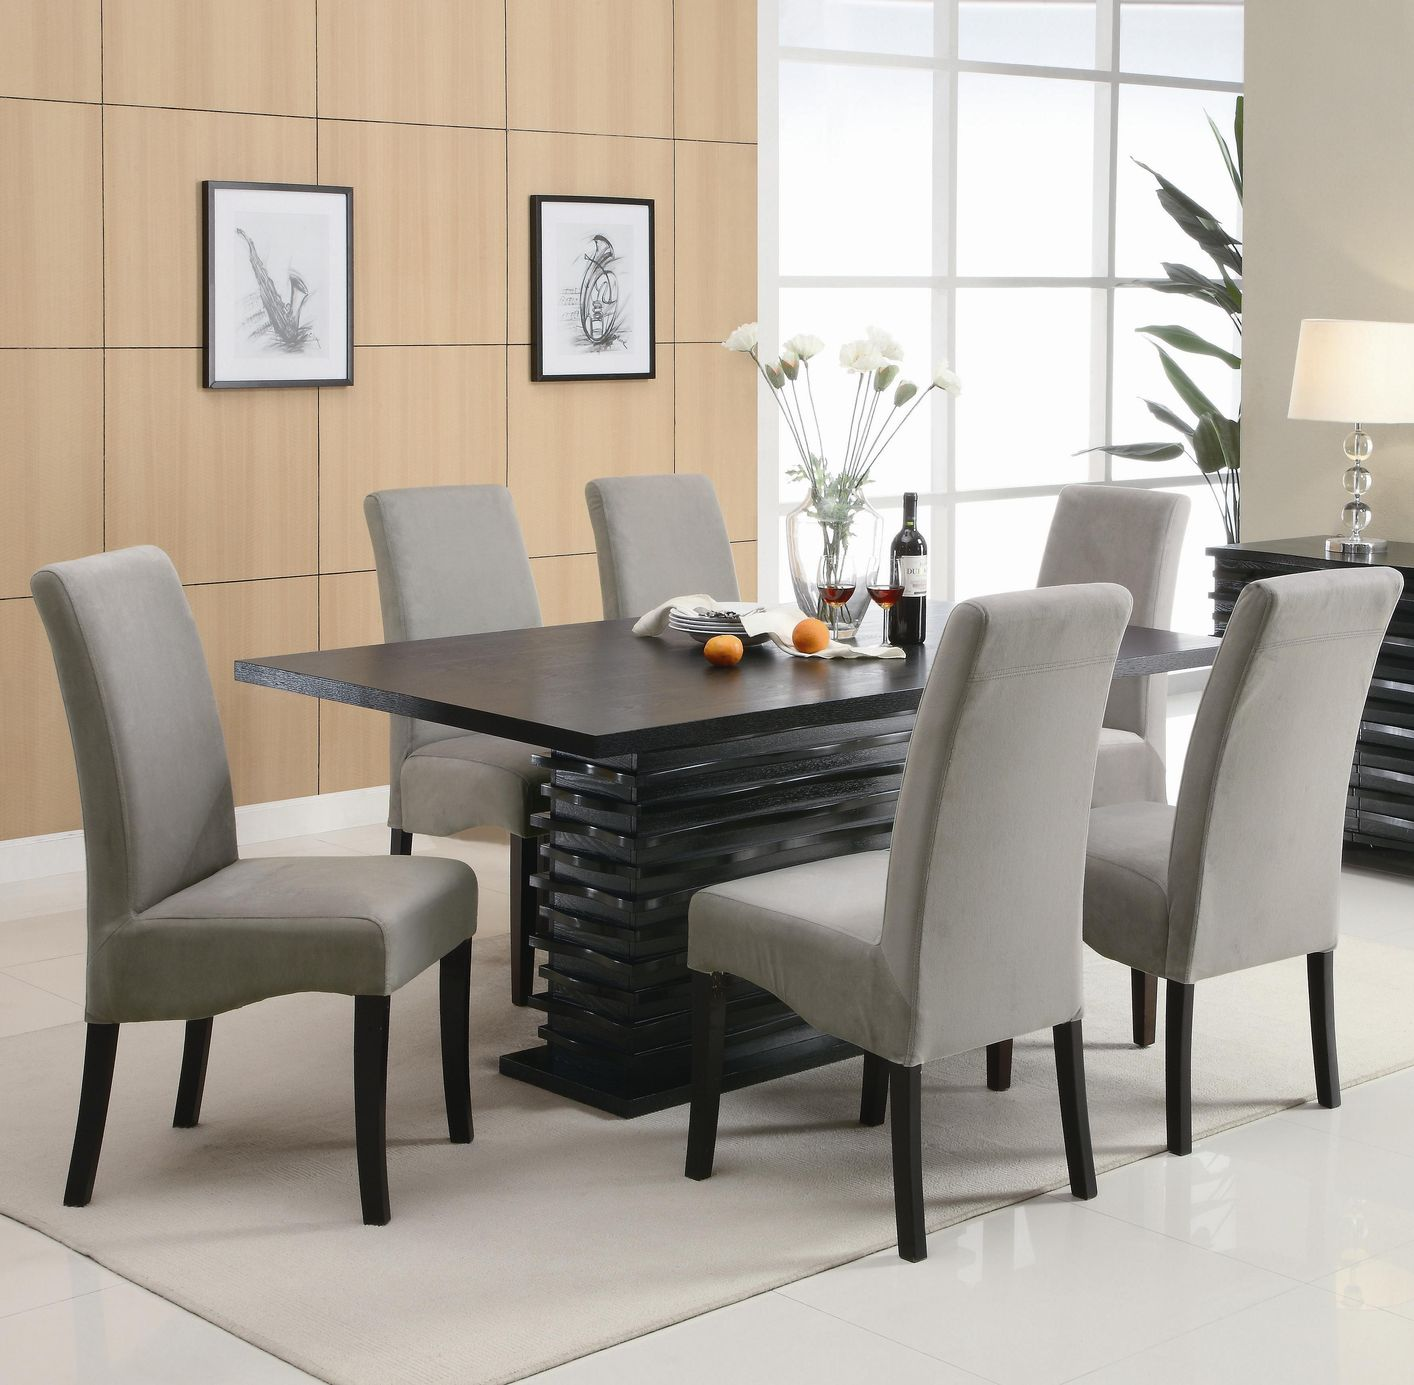 Wood And Black Dining Table: Coaster Stanton 102061 102062 Black Wood Dining Table Set